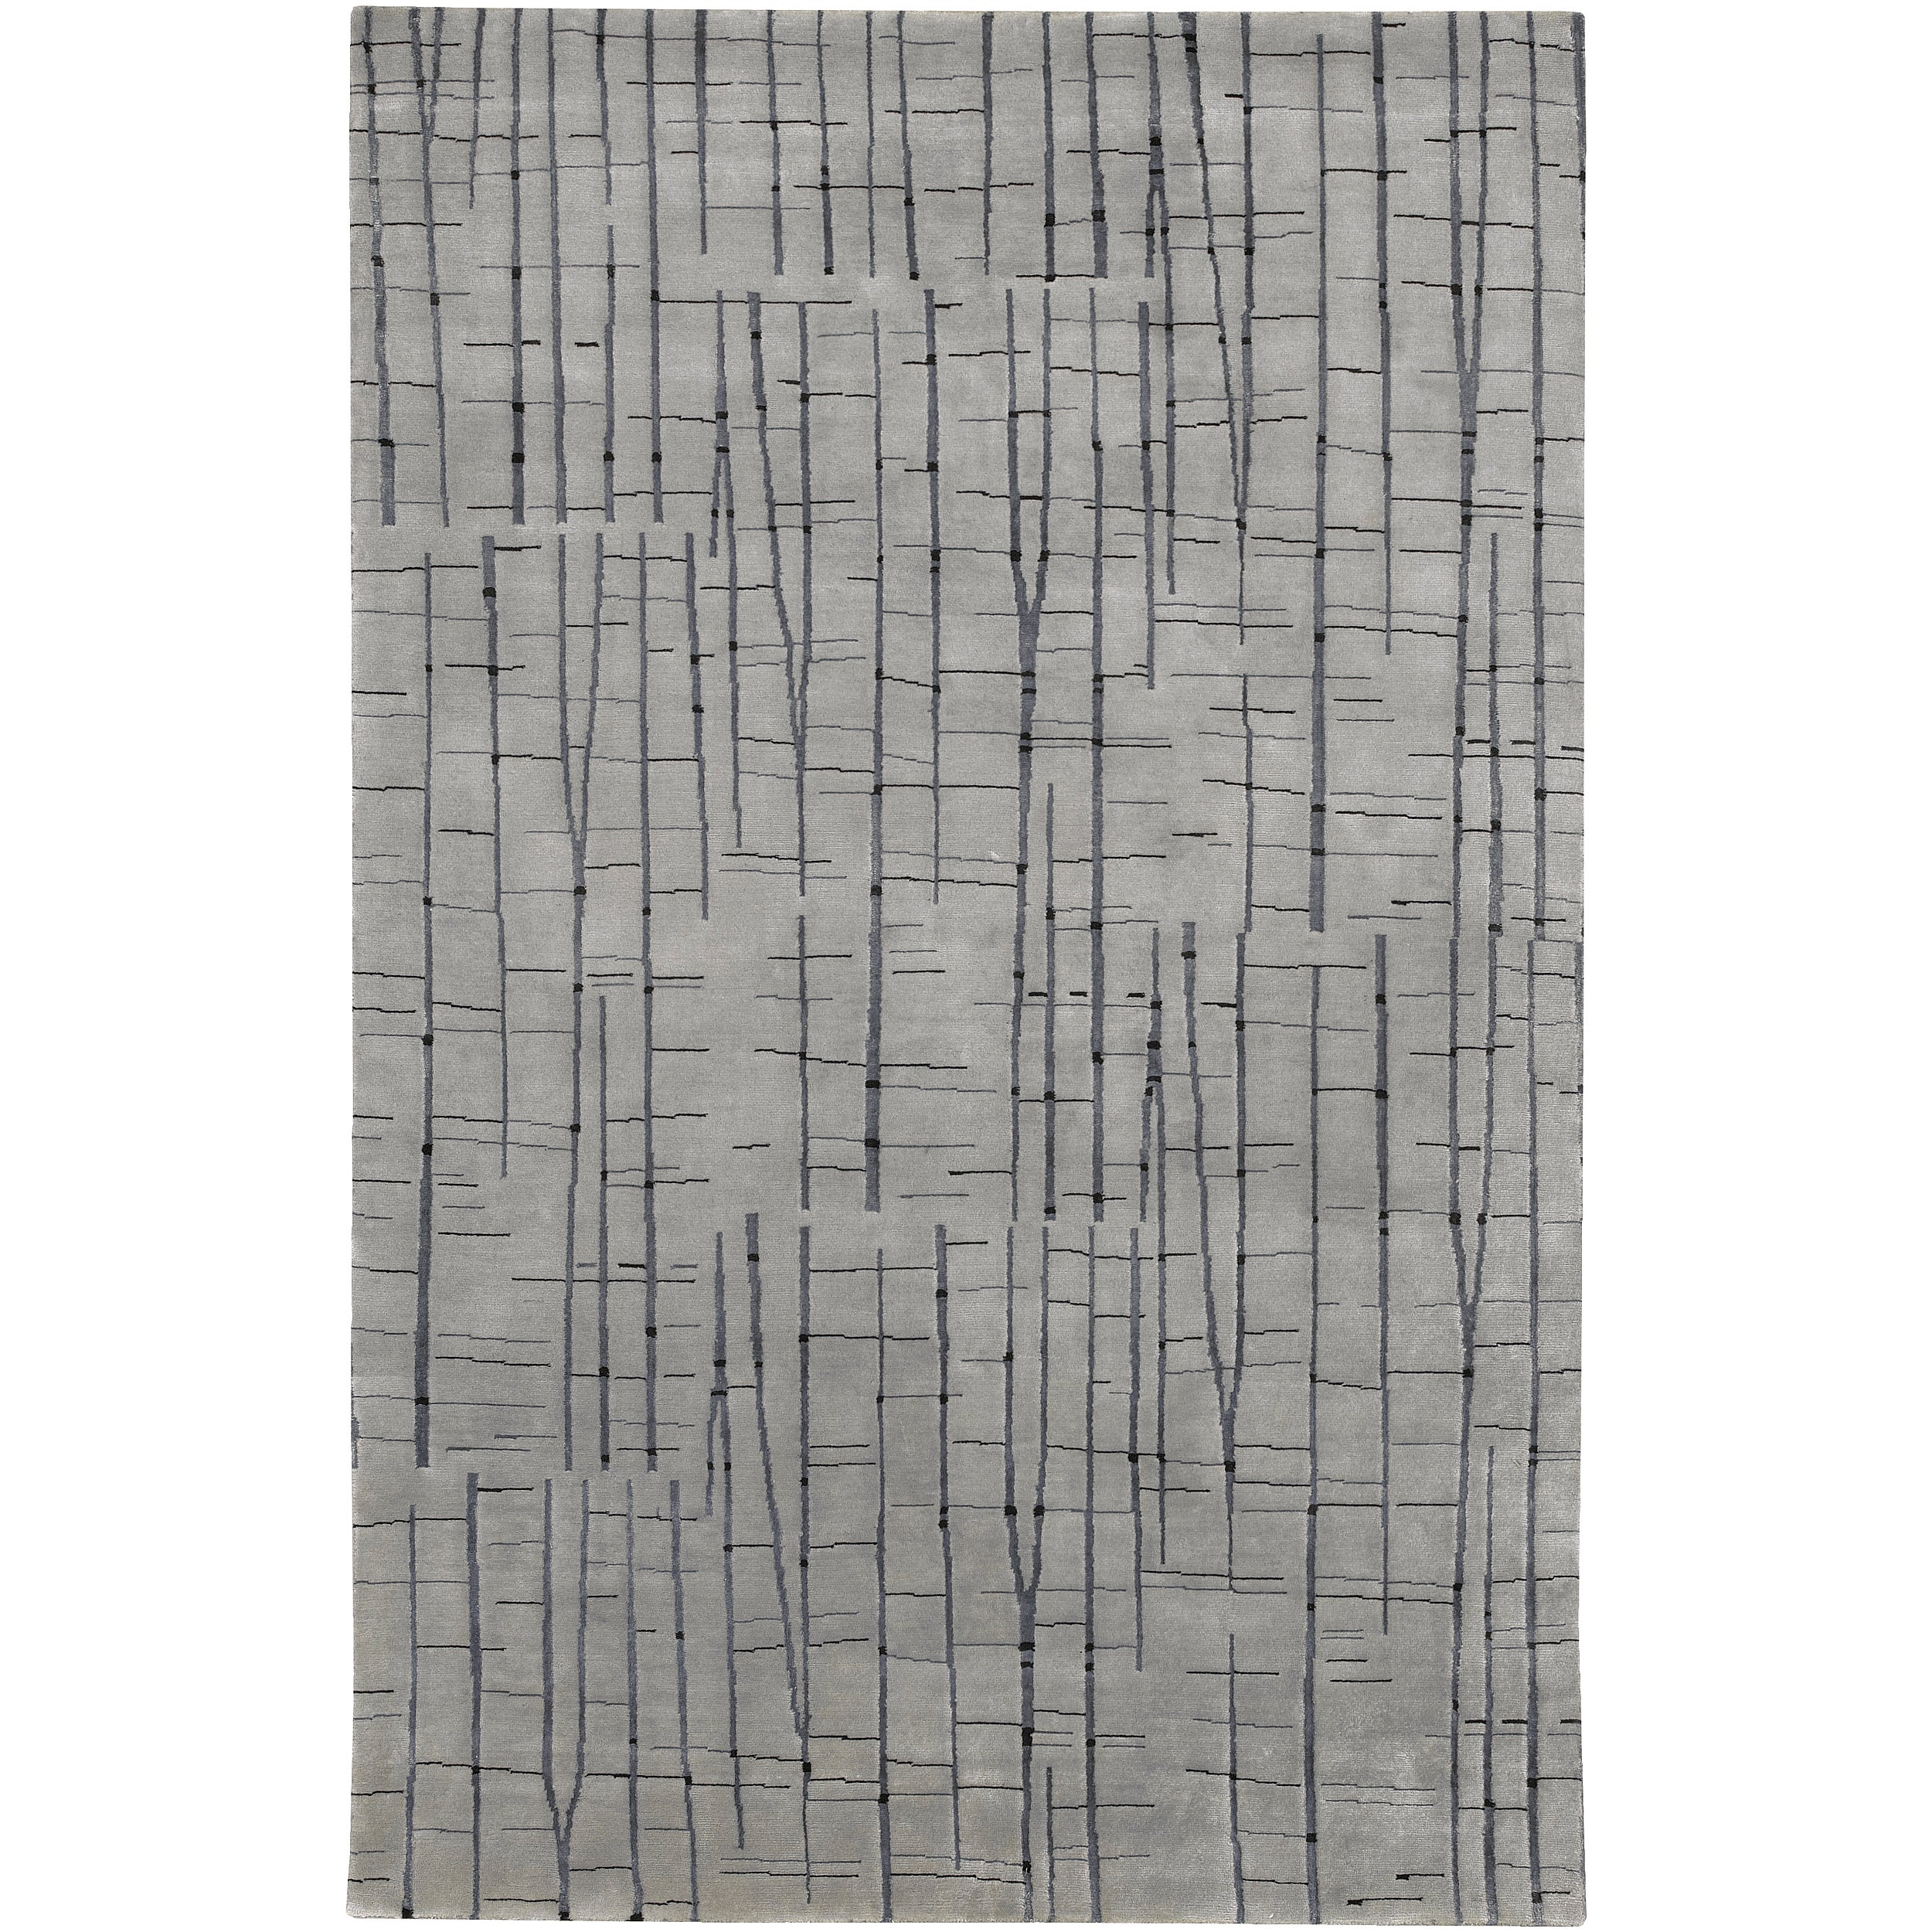 Hand-knotted Grey South Hampton Abstract Design Wool Area Rug - 5' x 8'